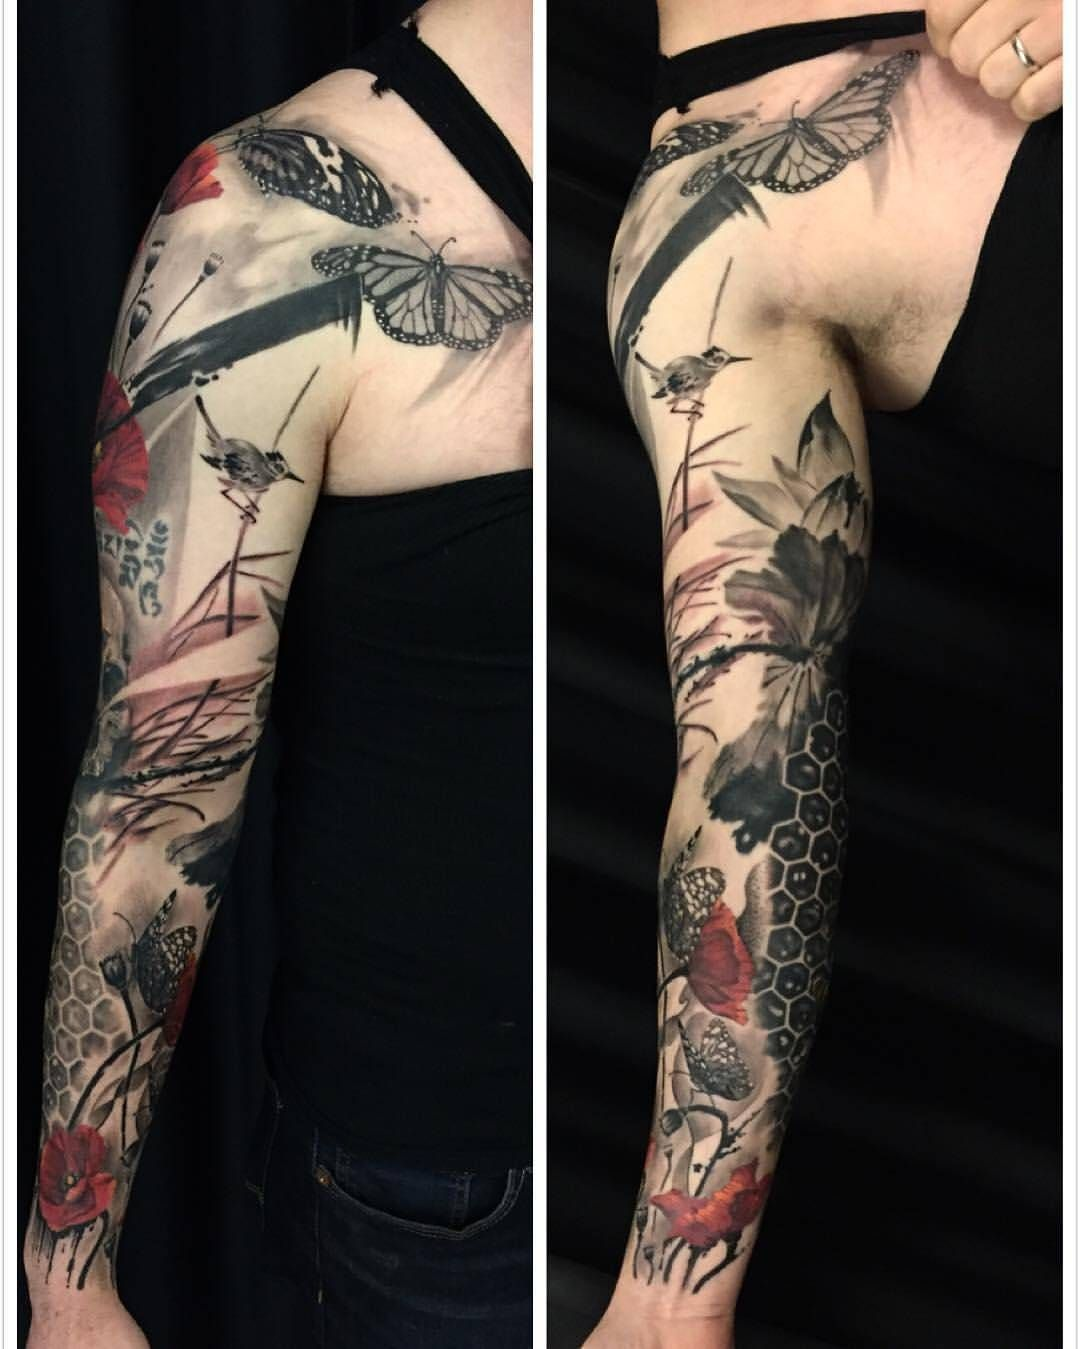 To See More Tattoos Like This Please Visit Https Www